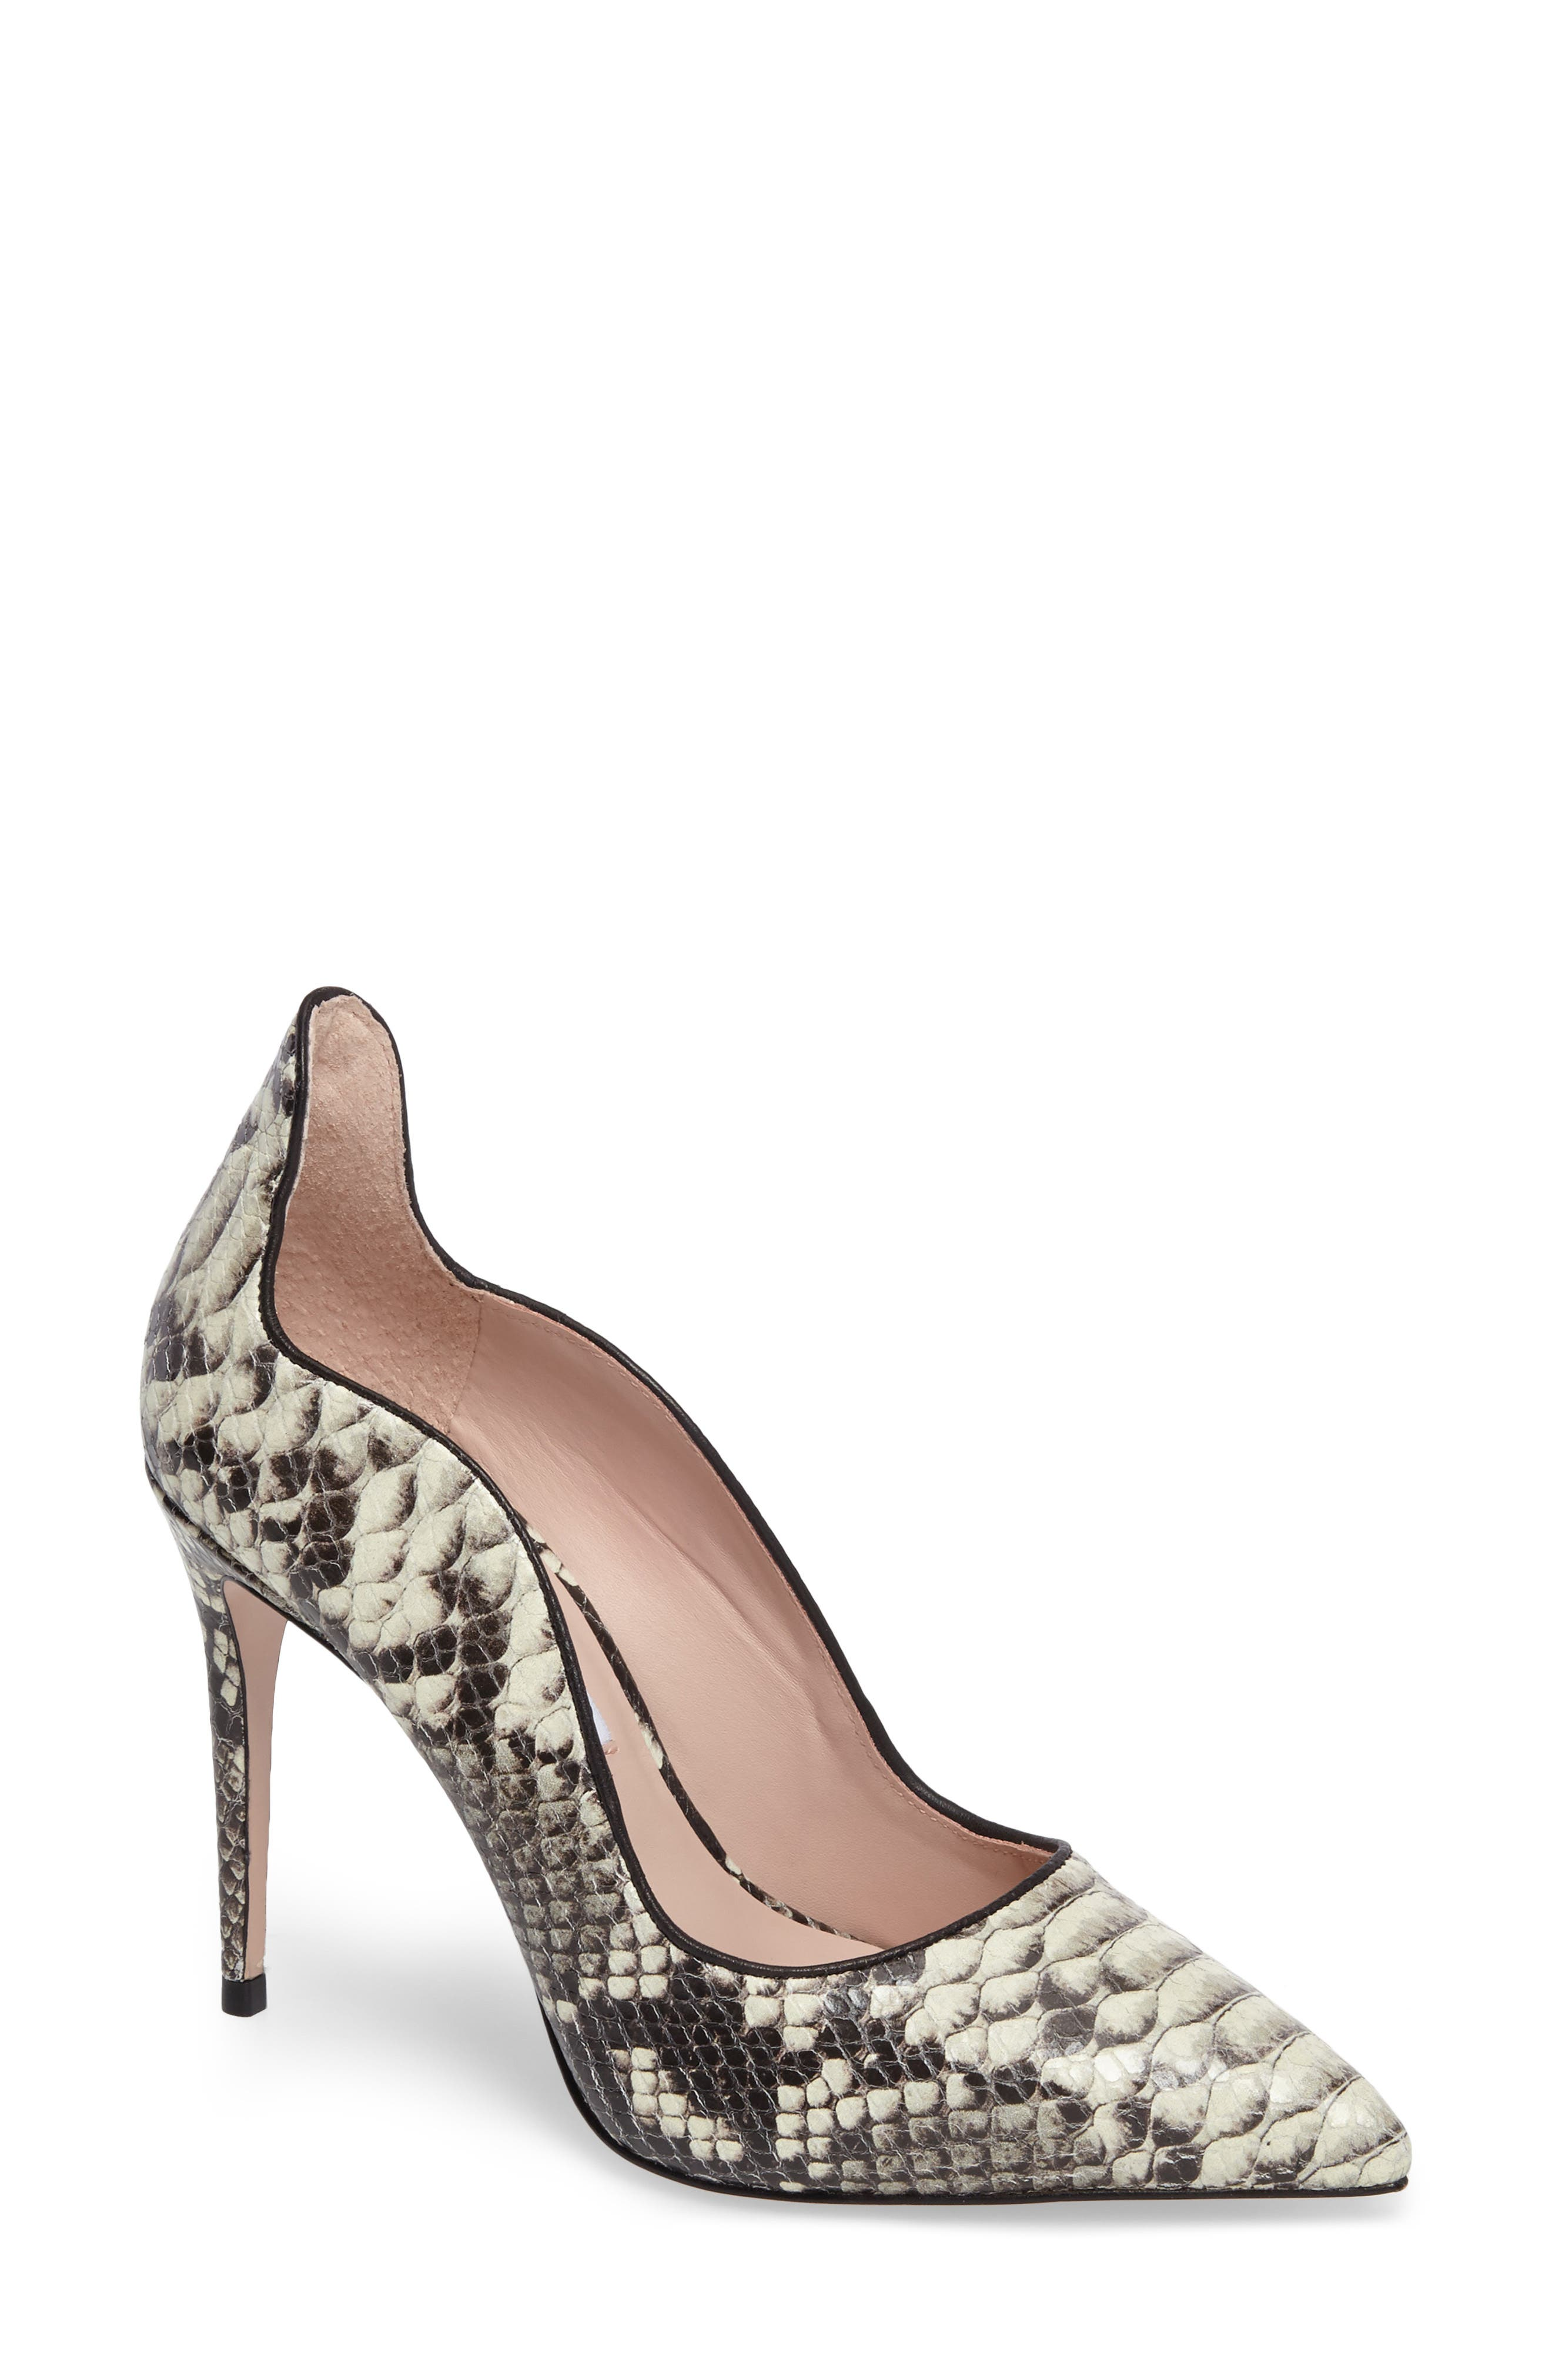 Anika II Curved Pump,                         Main,                         color, Natural Embossed Leather